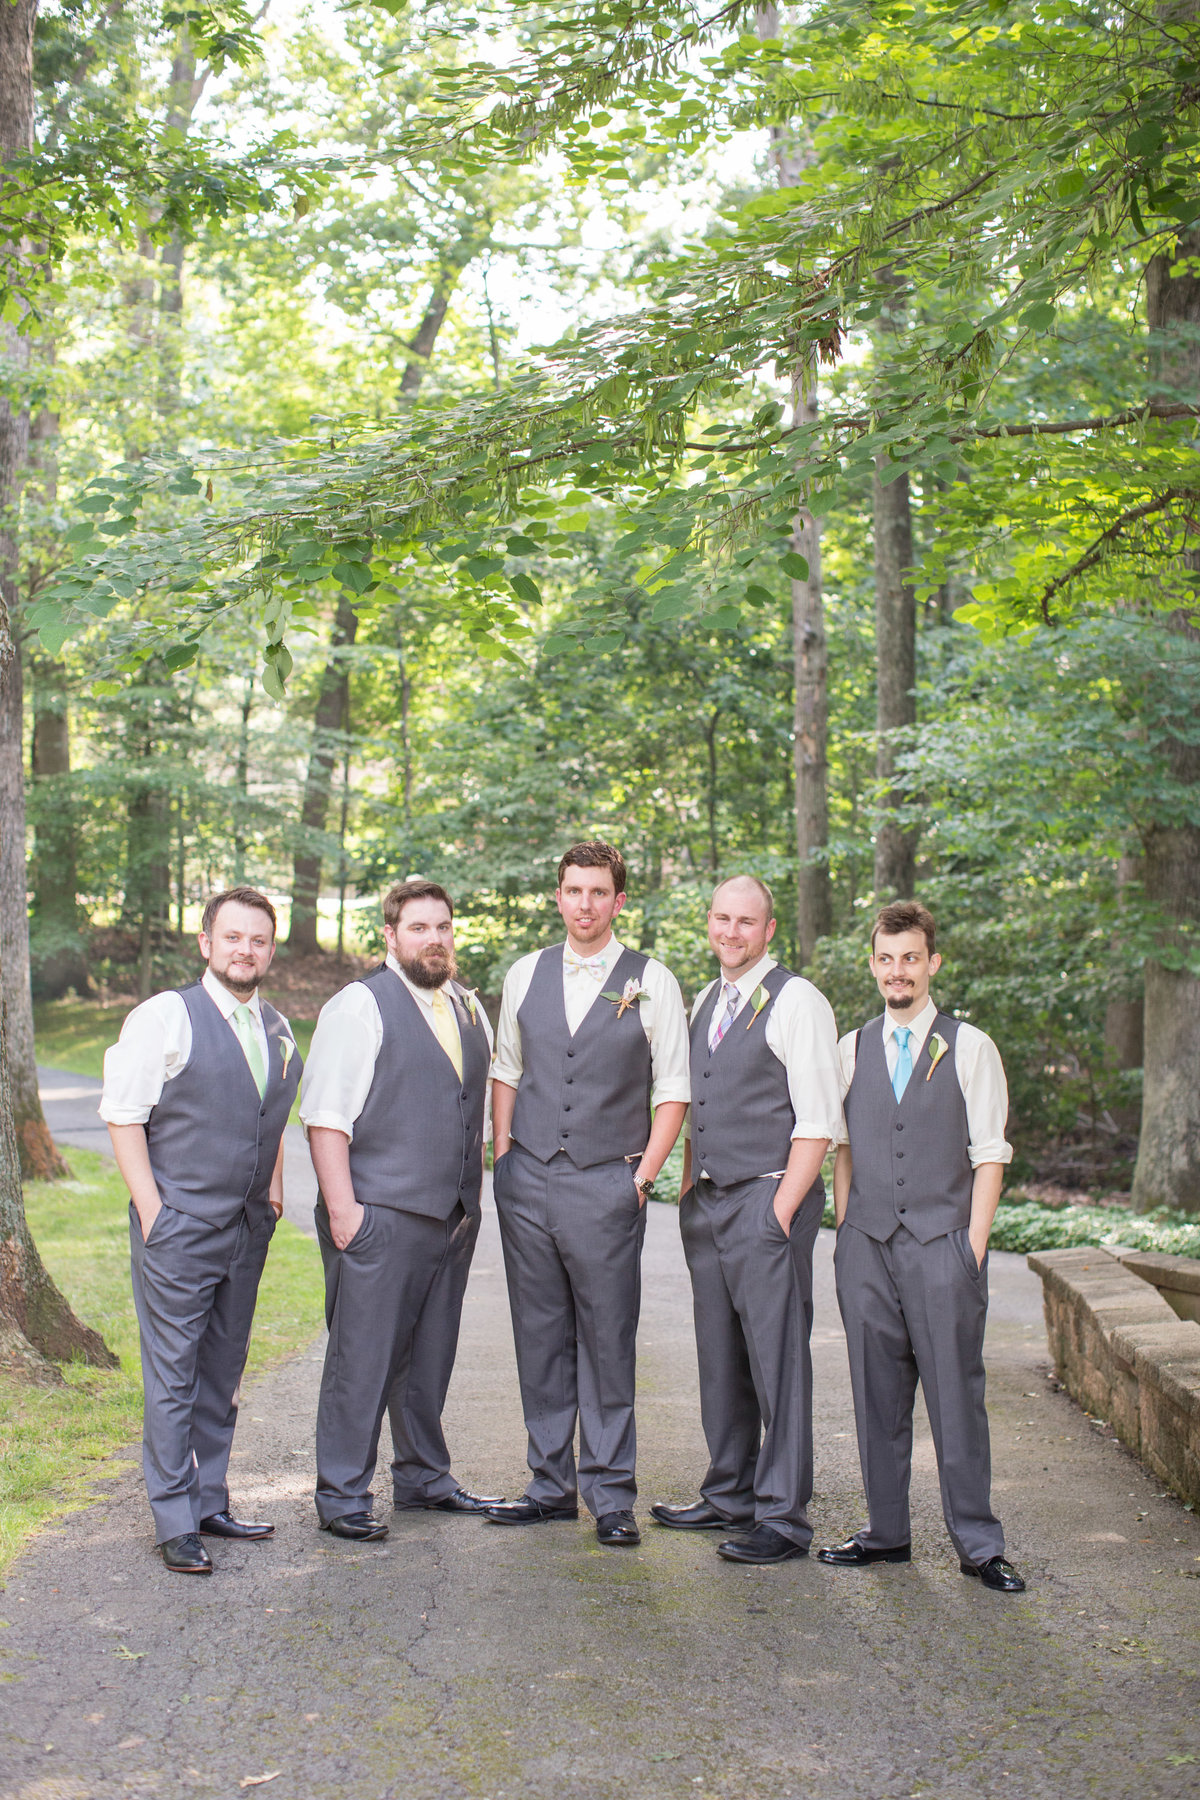 AlisonandJohnWedding-BridalParty-32